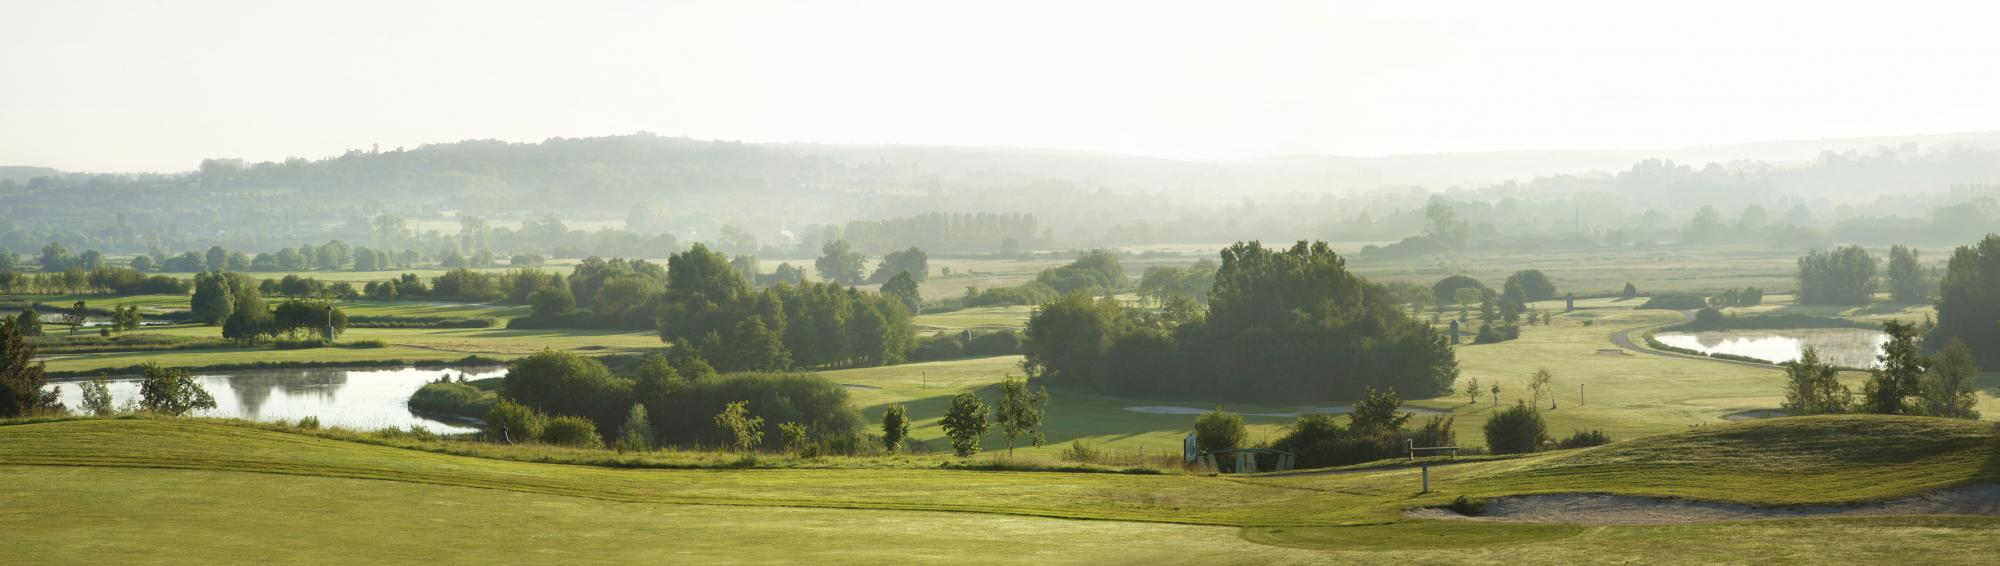 Le Golf de L Amiraute offers several of the most excellent golf course within Normandy